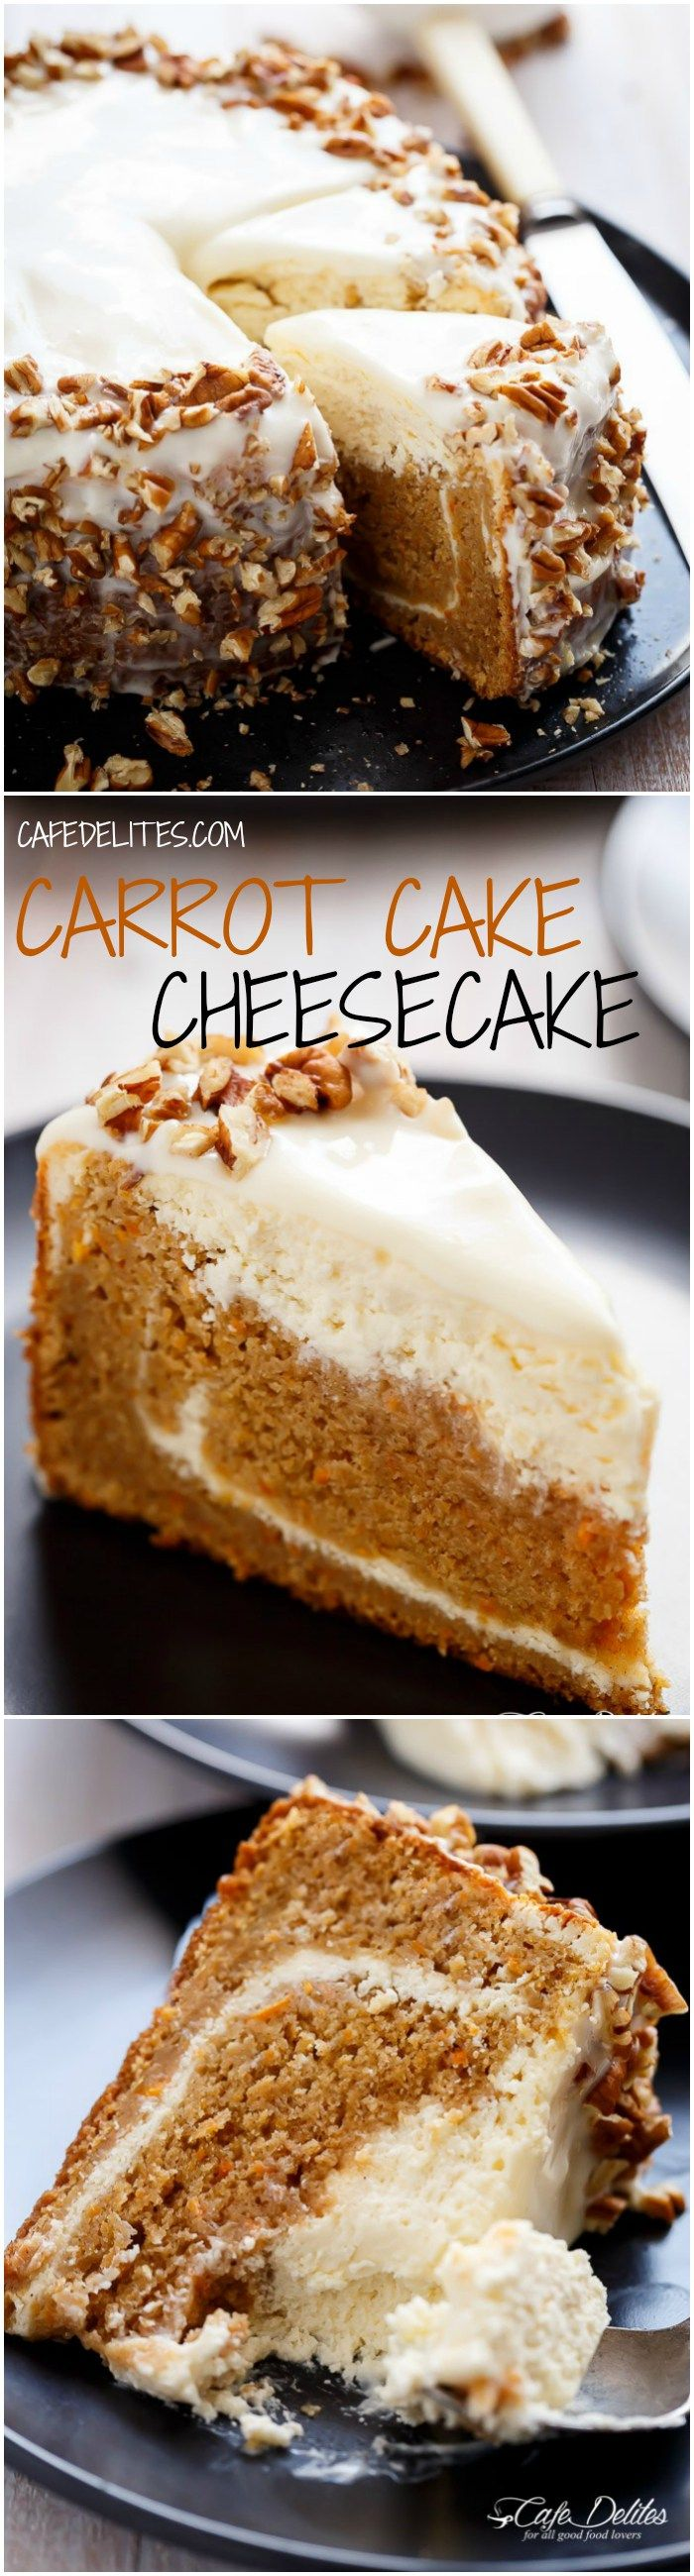 Carrot Cake Cheesecake to add to your Easter menu planning! A fluffy and super moist, lower in fat, lighter in calories carrot cake layered with a creamy, lemon scented cheesecake. The BEST of both worlds!   http://cafedelites.com